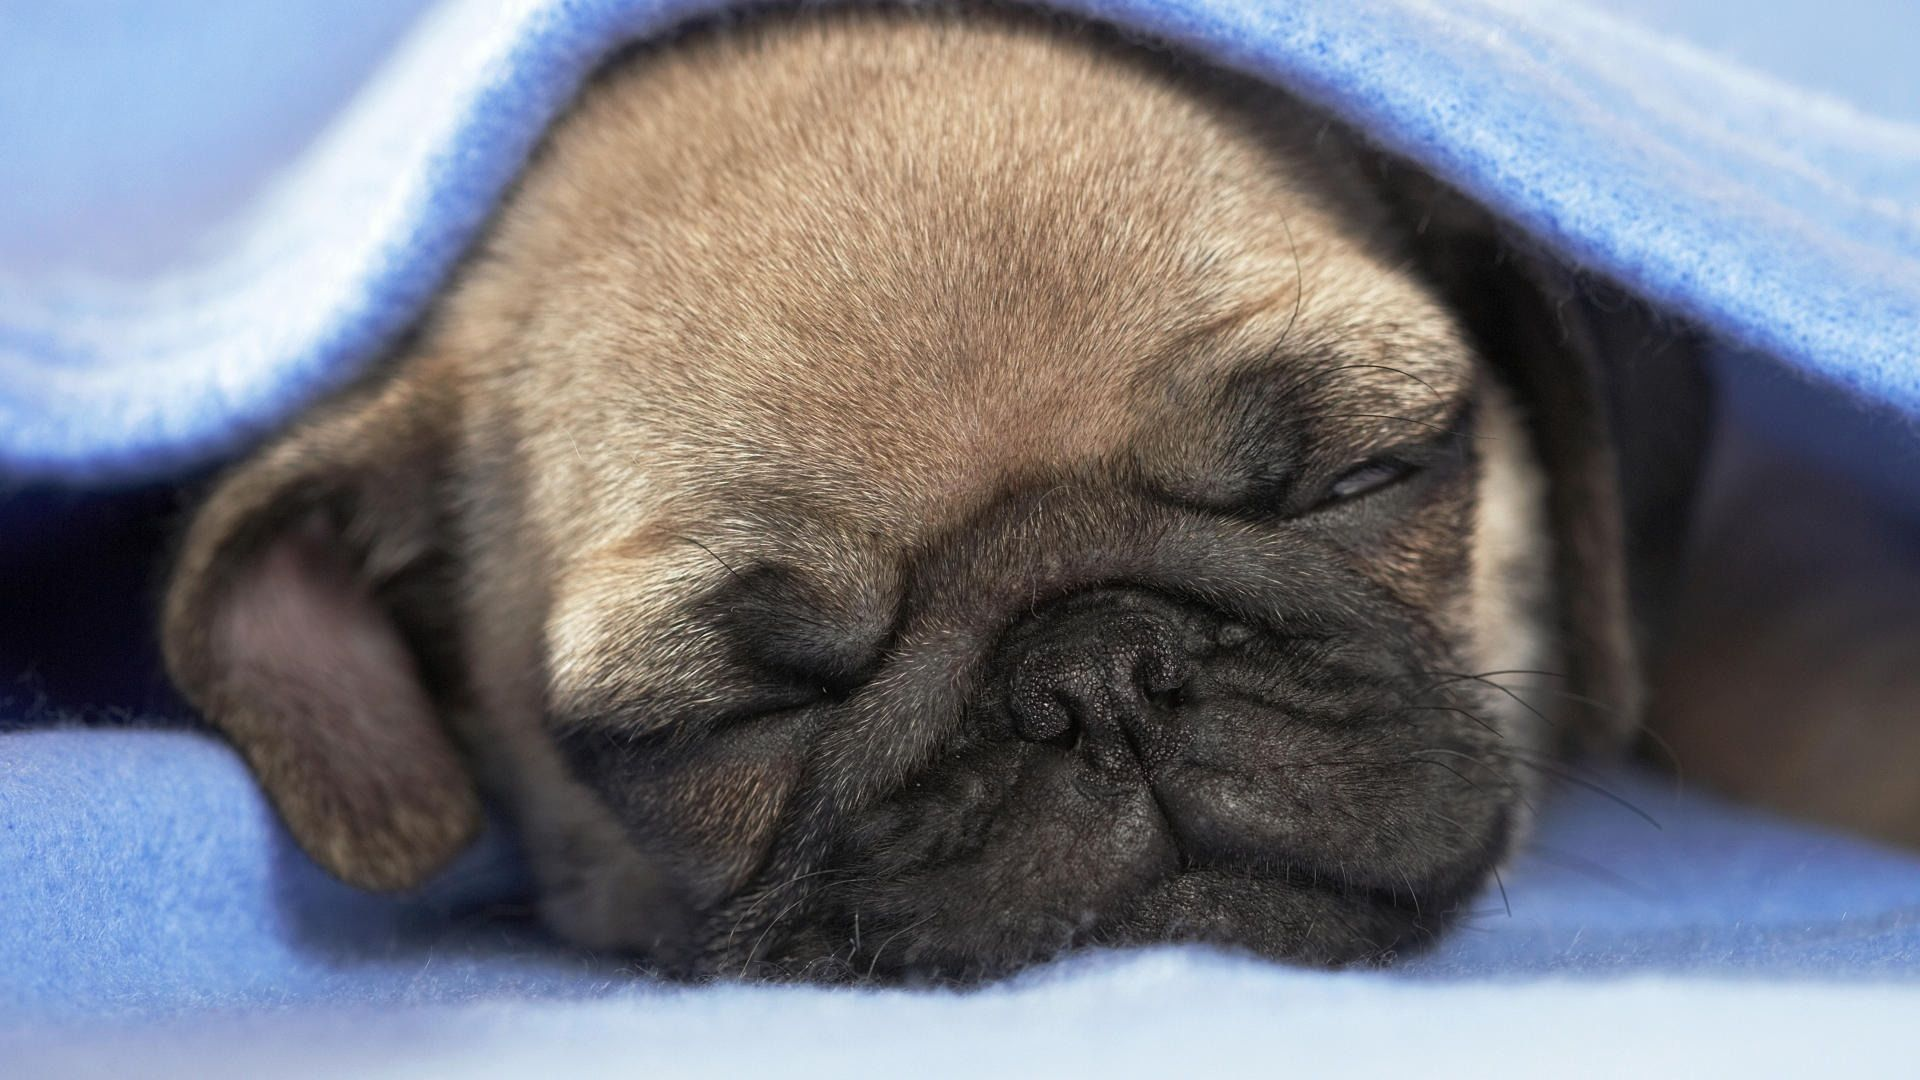 Cute Sleeping Pug Puppy Wallpaper Screensaver Background Puppies